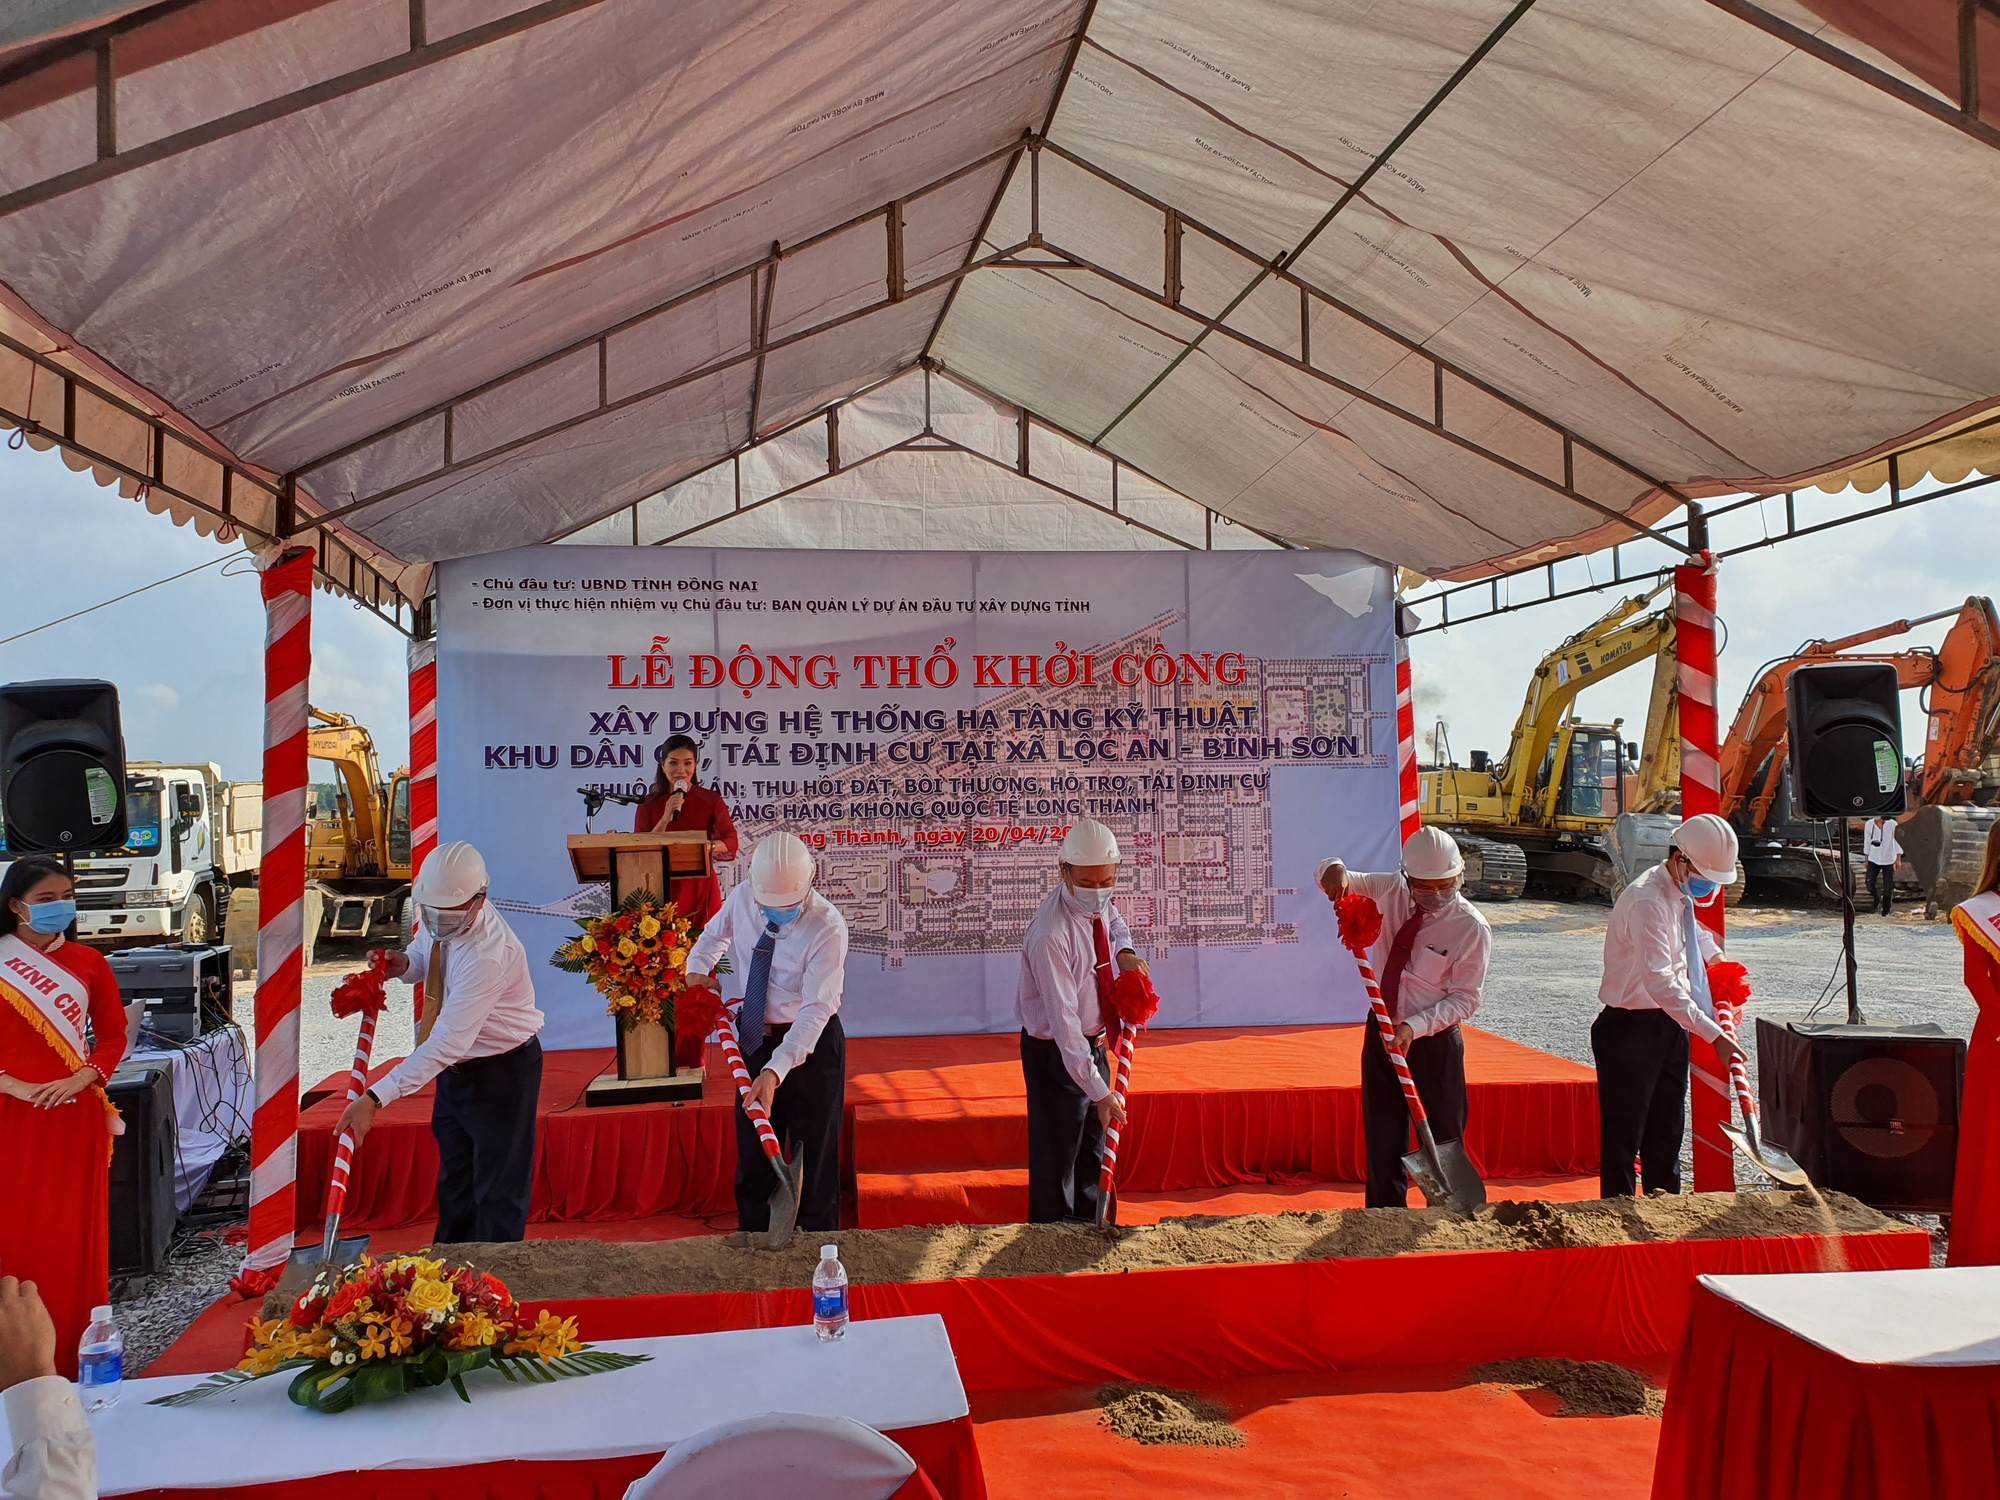 Vietnam's megaairport project moves forward as compensation plan approved